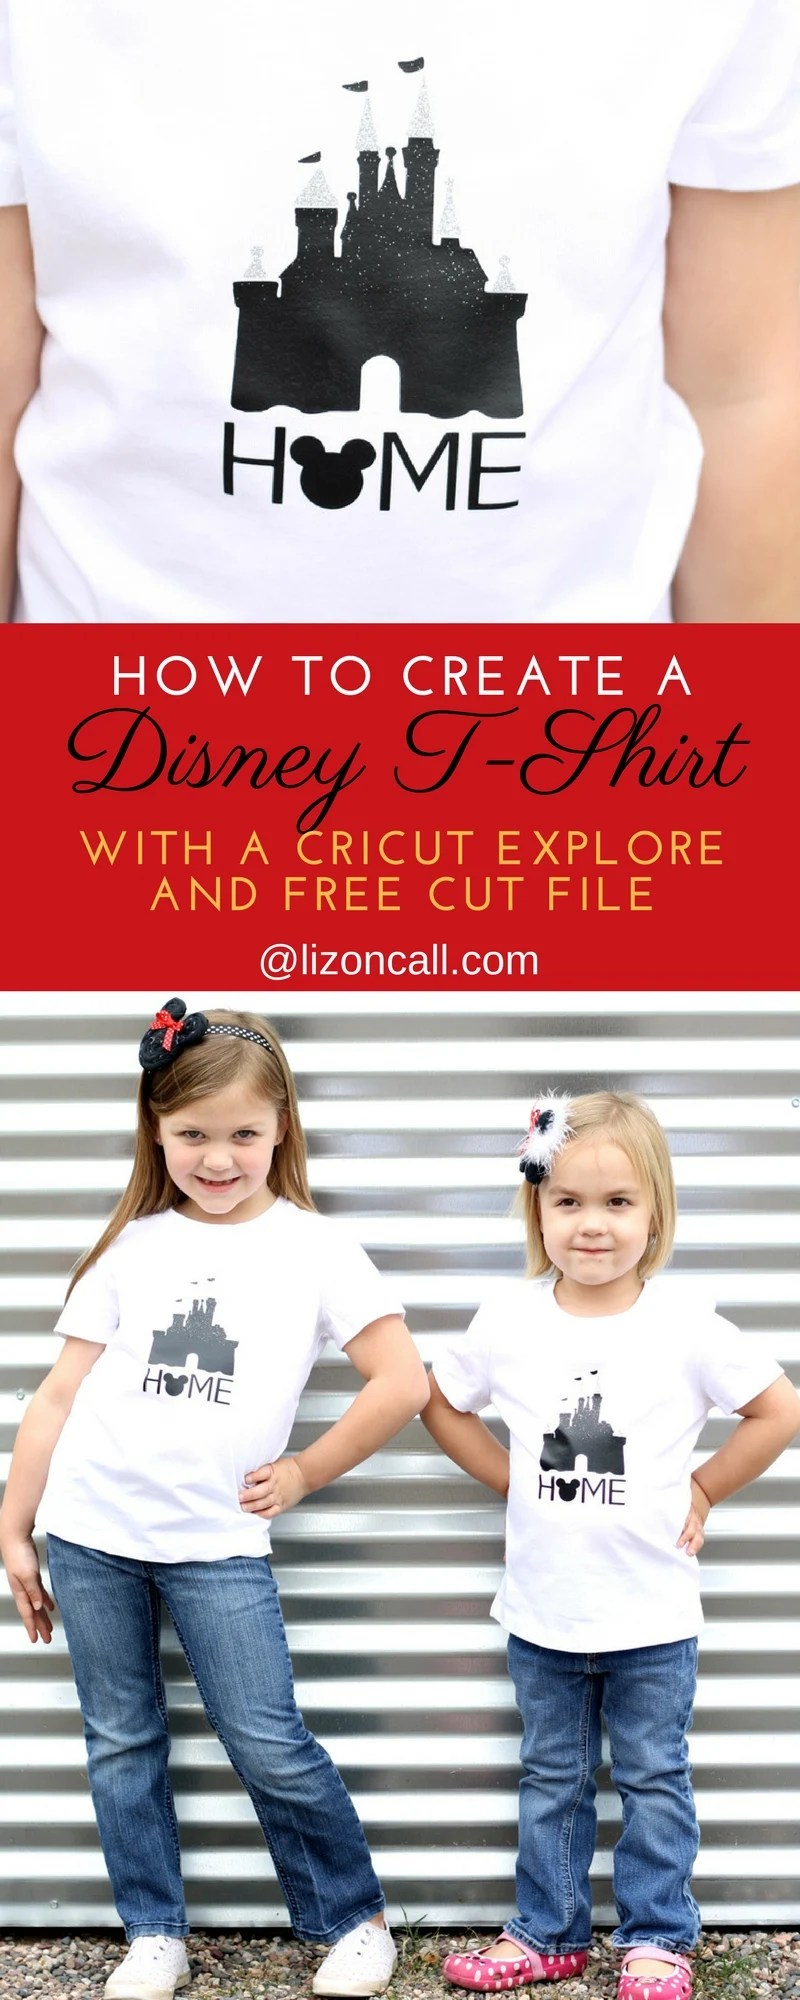 How To Make A Custom T Shirt With The Cricut Explore Air 2 Liz On Call